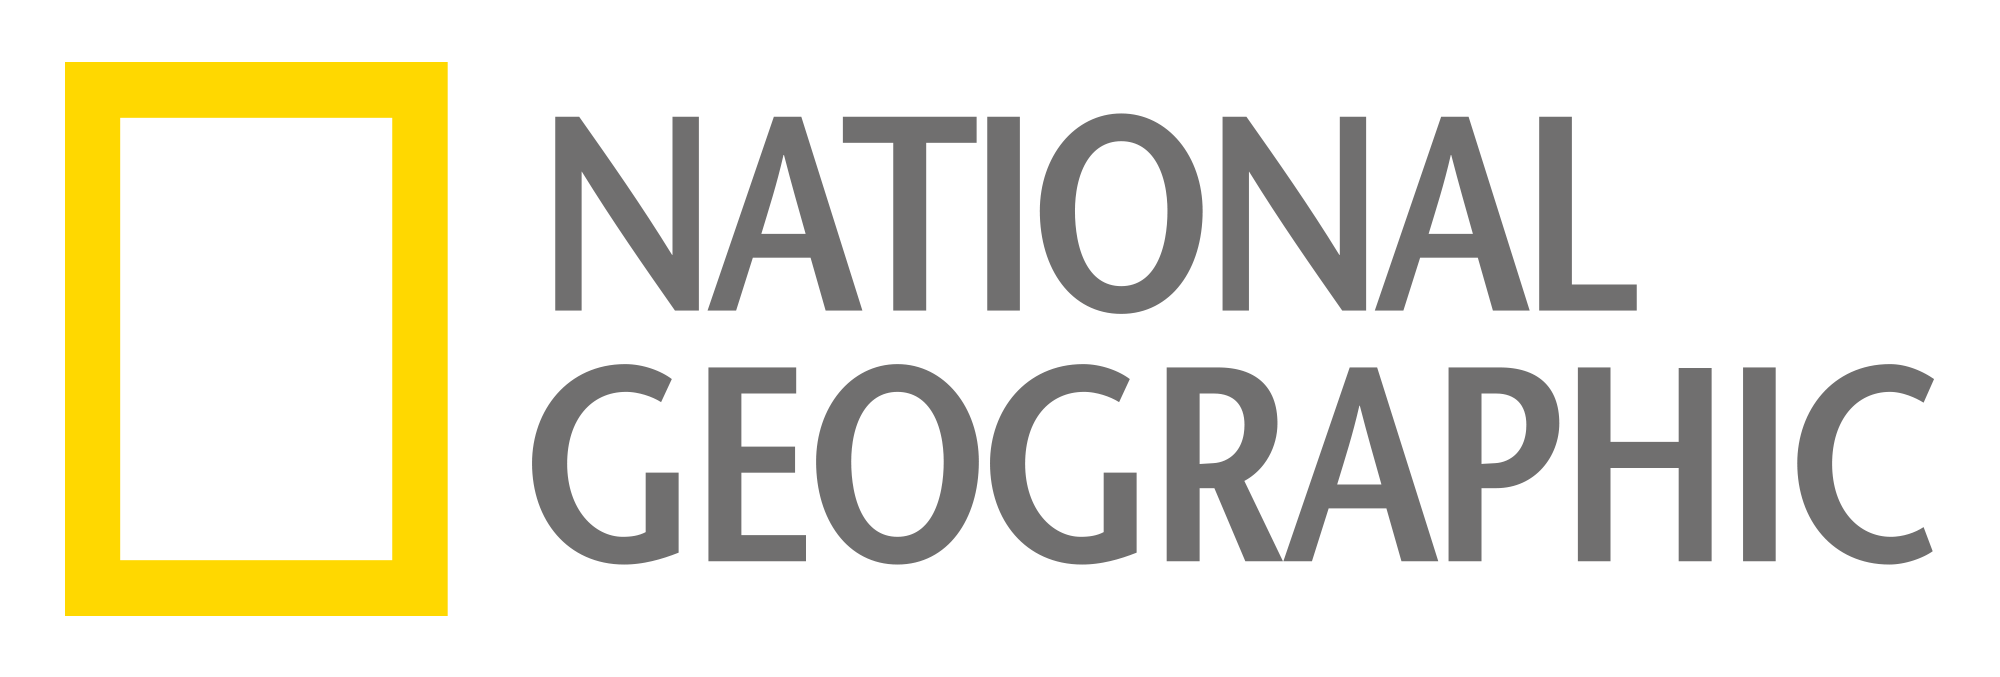 National Geographic Channel Logo PNG - 34224